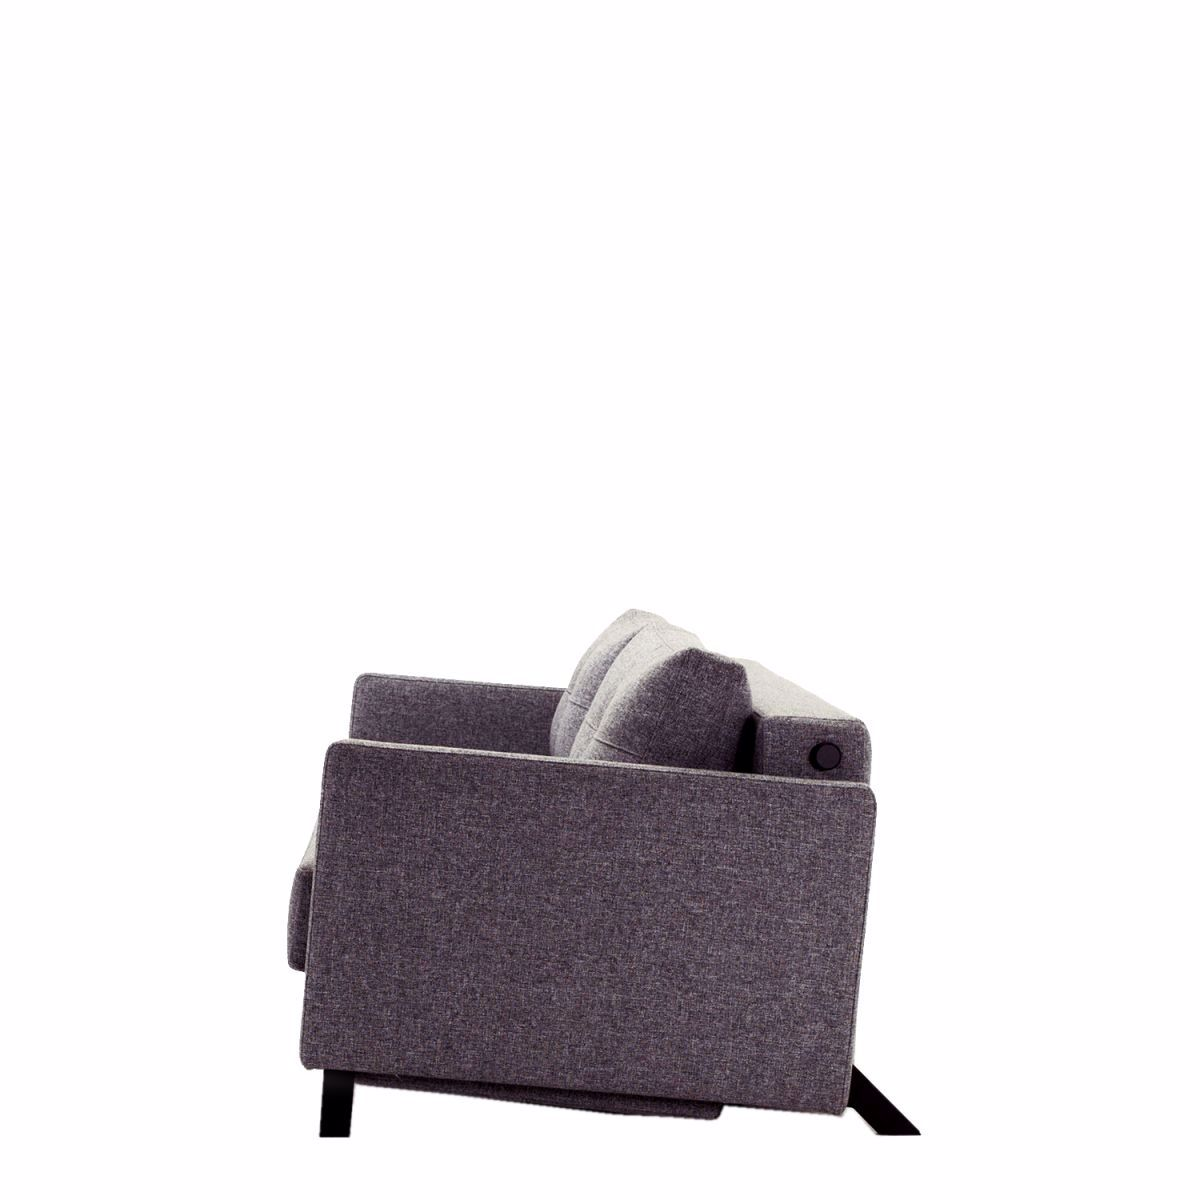 Picture of Cubed Sofa Bed with Arms